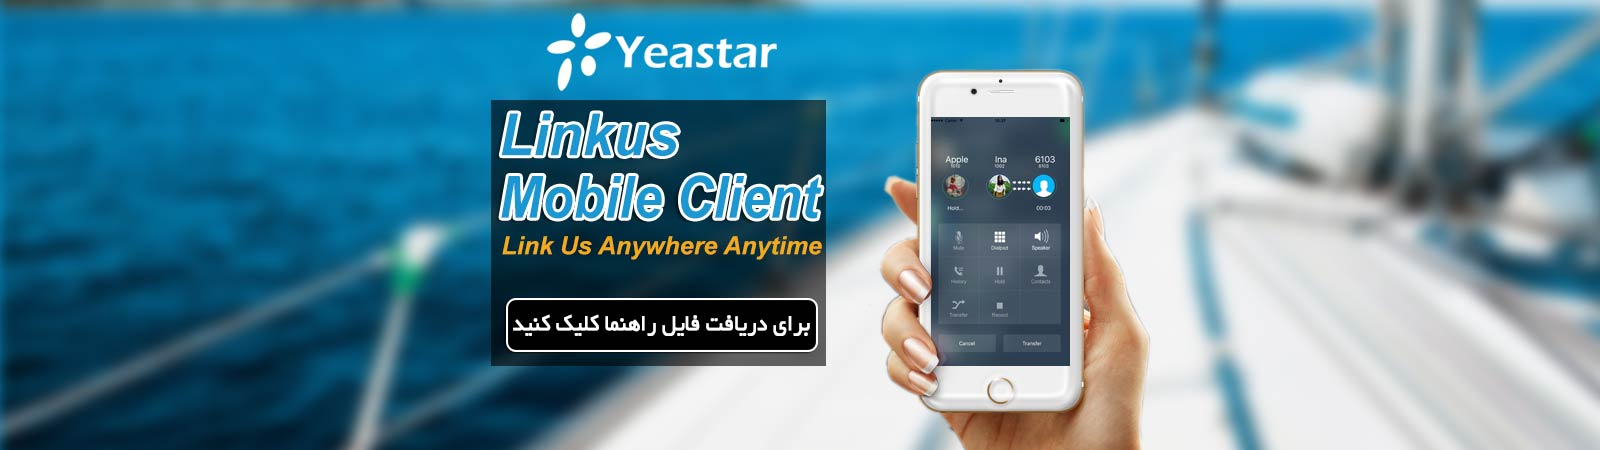 yeastar - linkus - soft phone